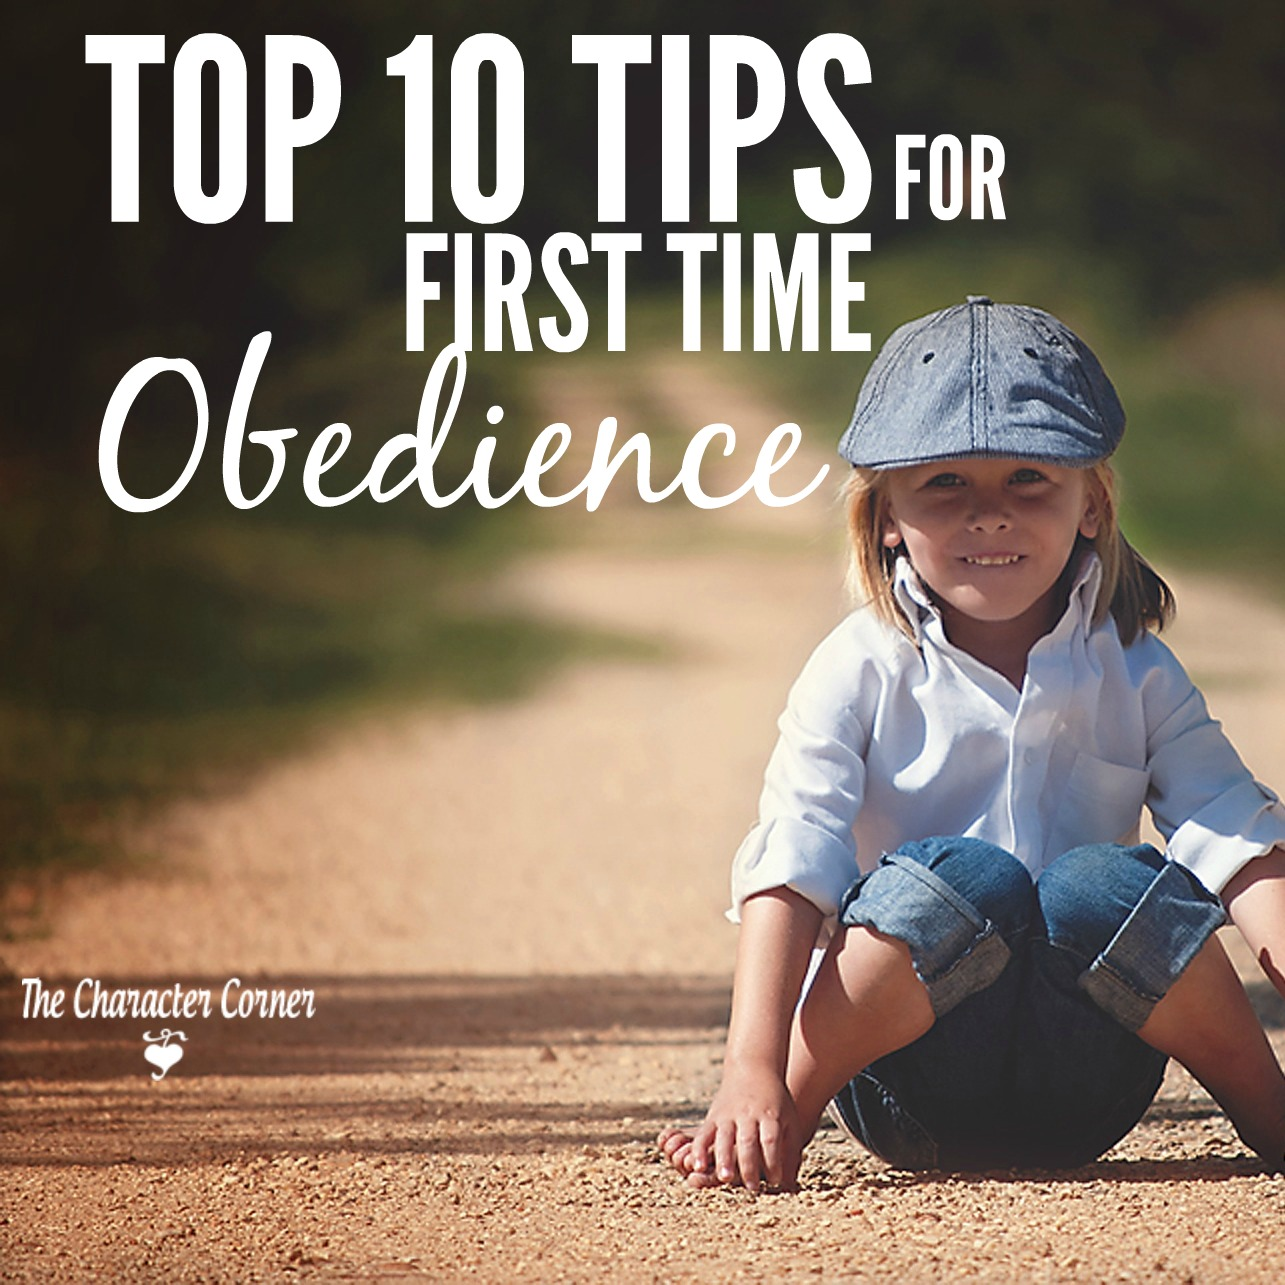 10 Tips for First Time Obedience - The Character Corner